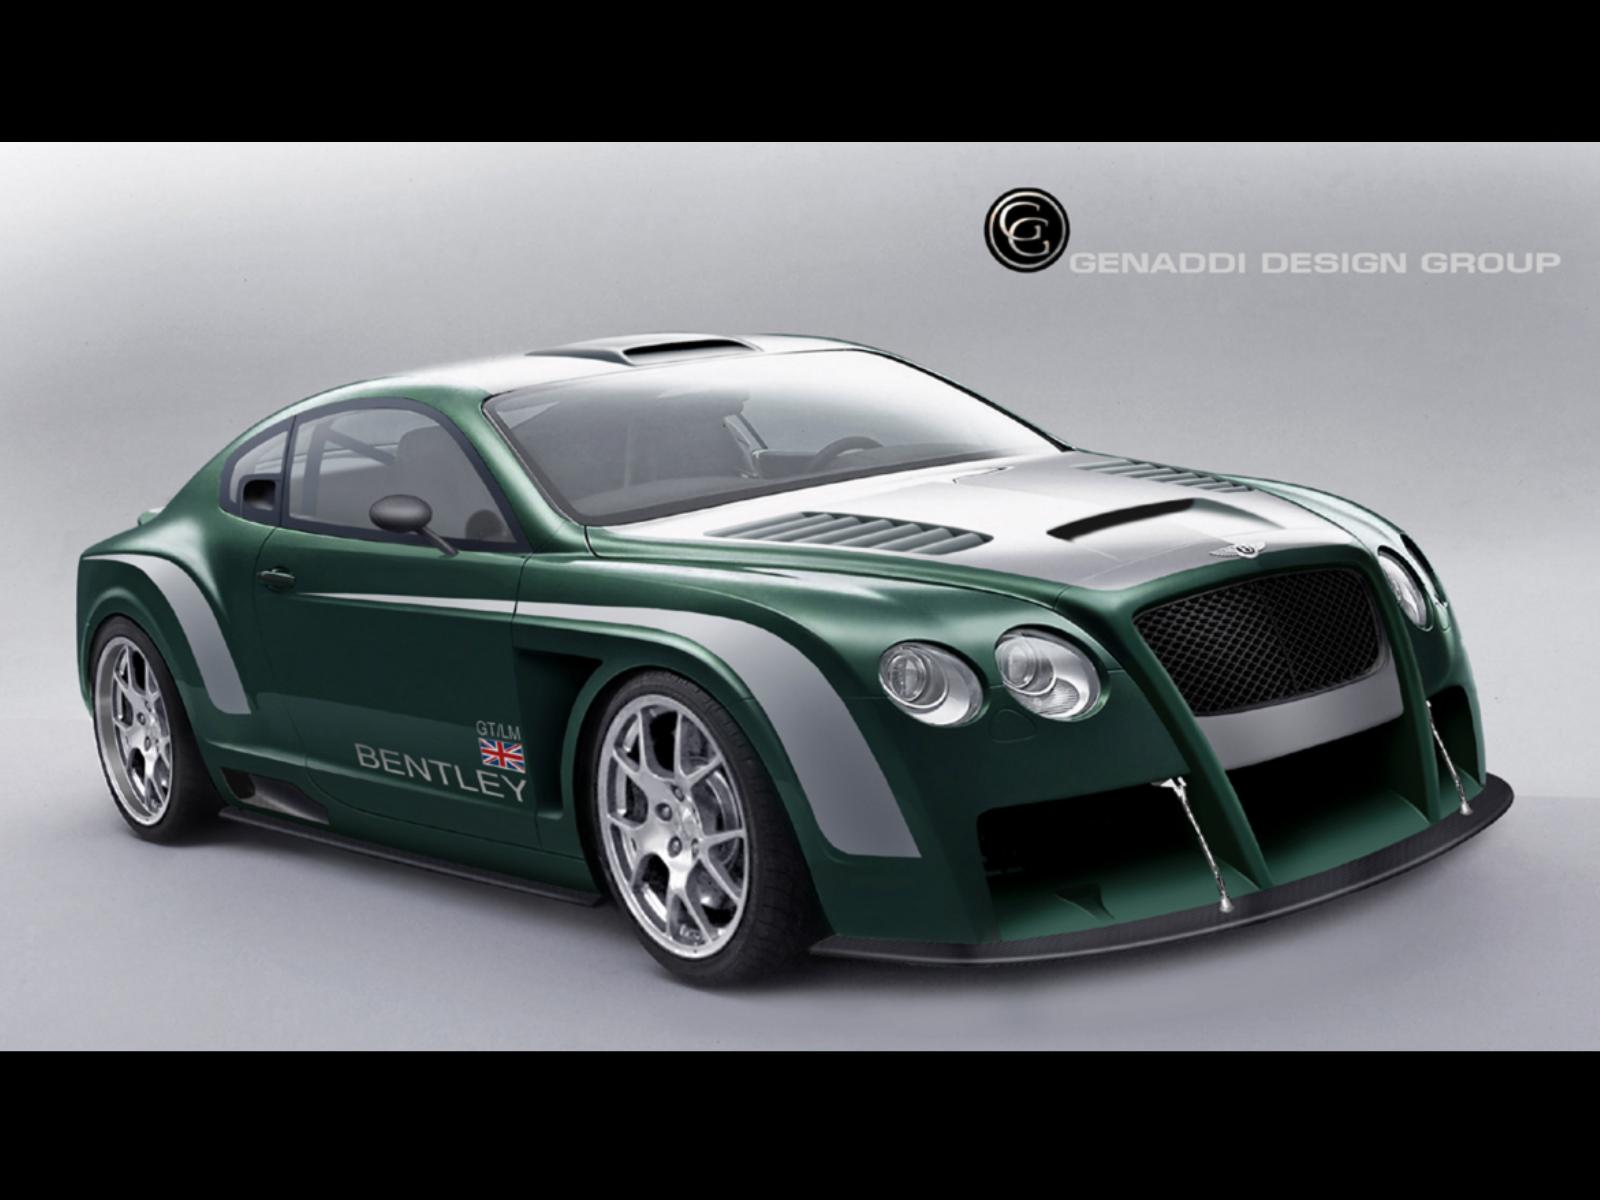 Bentley Genaddi Continental GT/LM photo 17271